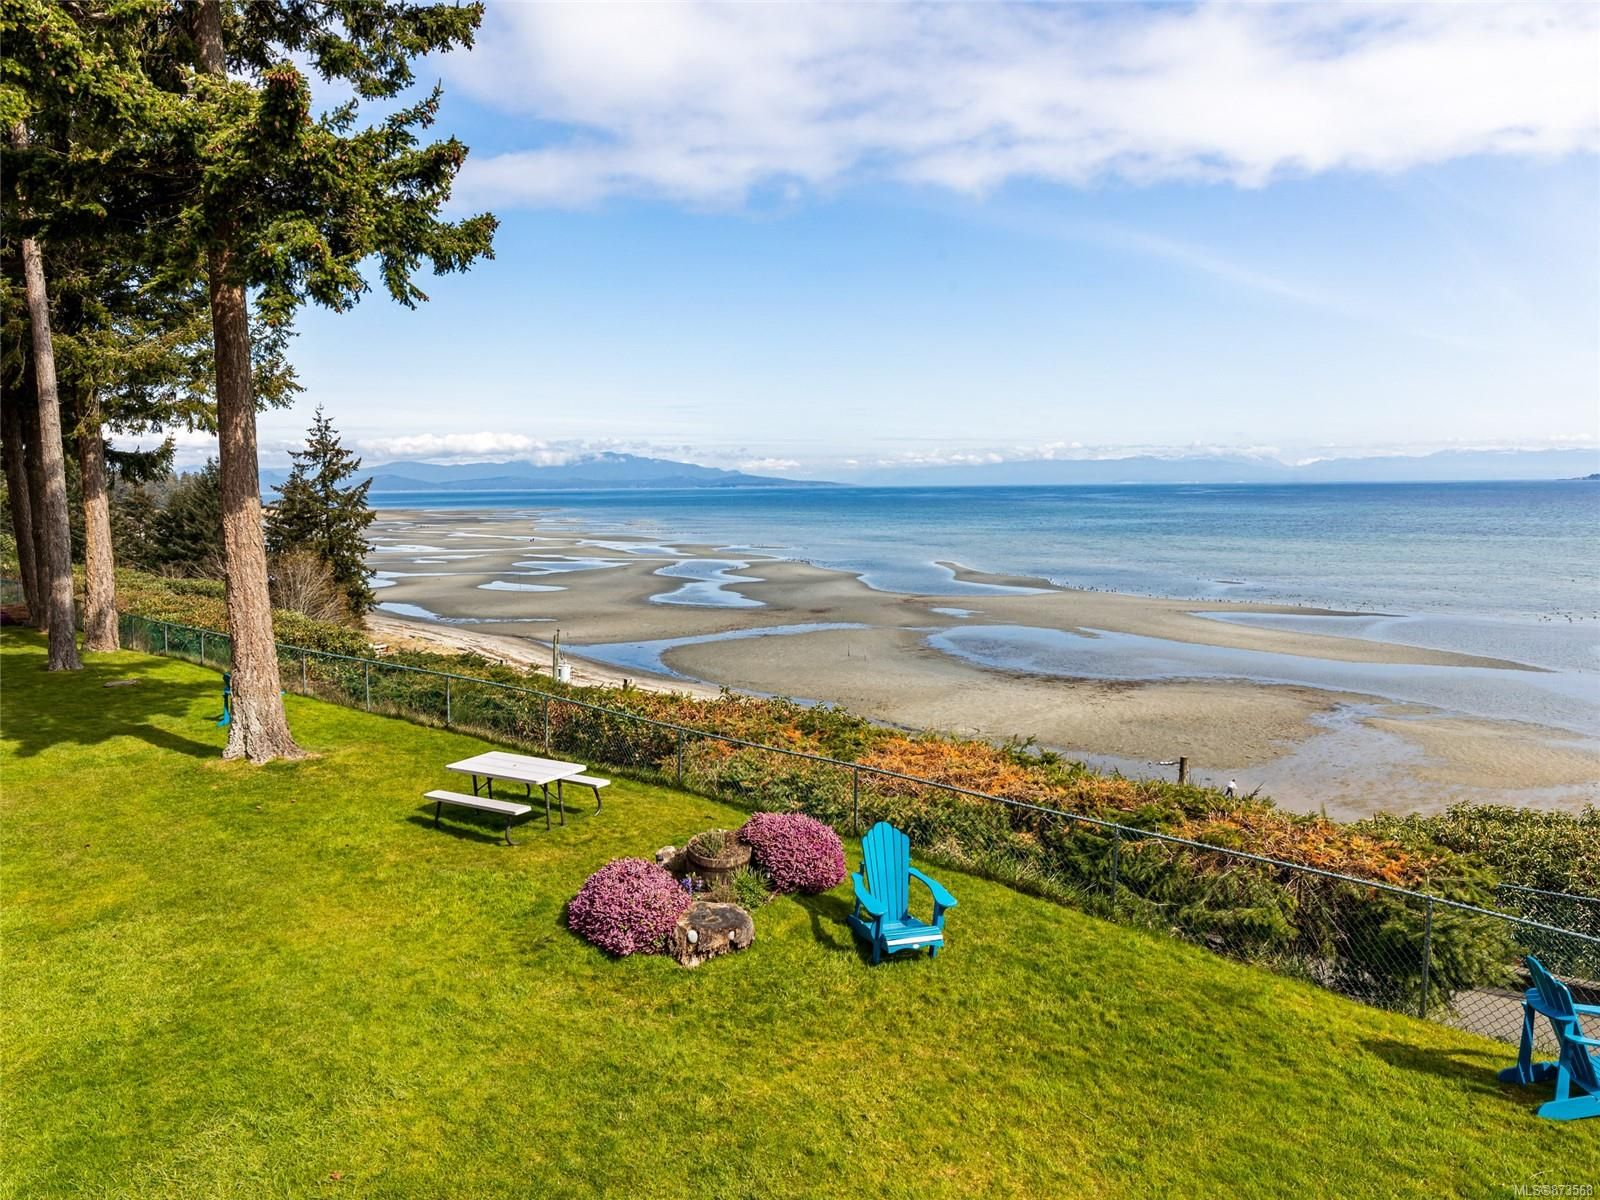 Main Photo: 29 1145 RESORT Dr in : PQ Parksville Row/Townhouse for sale (Parksville/Qualicum)  : MLS®# 873568